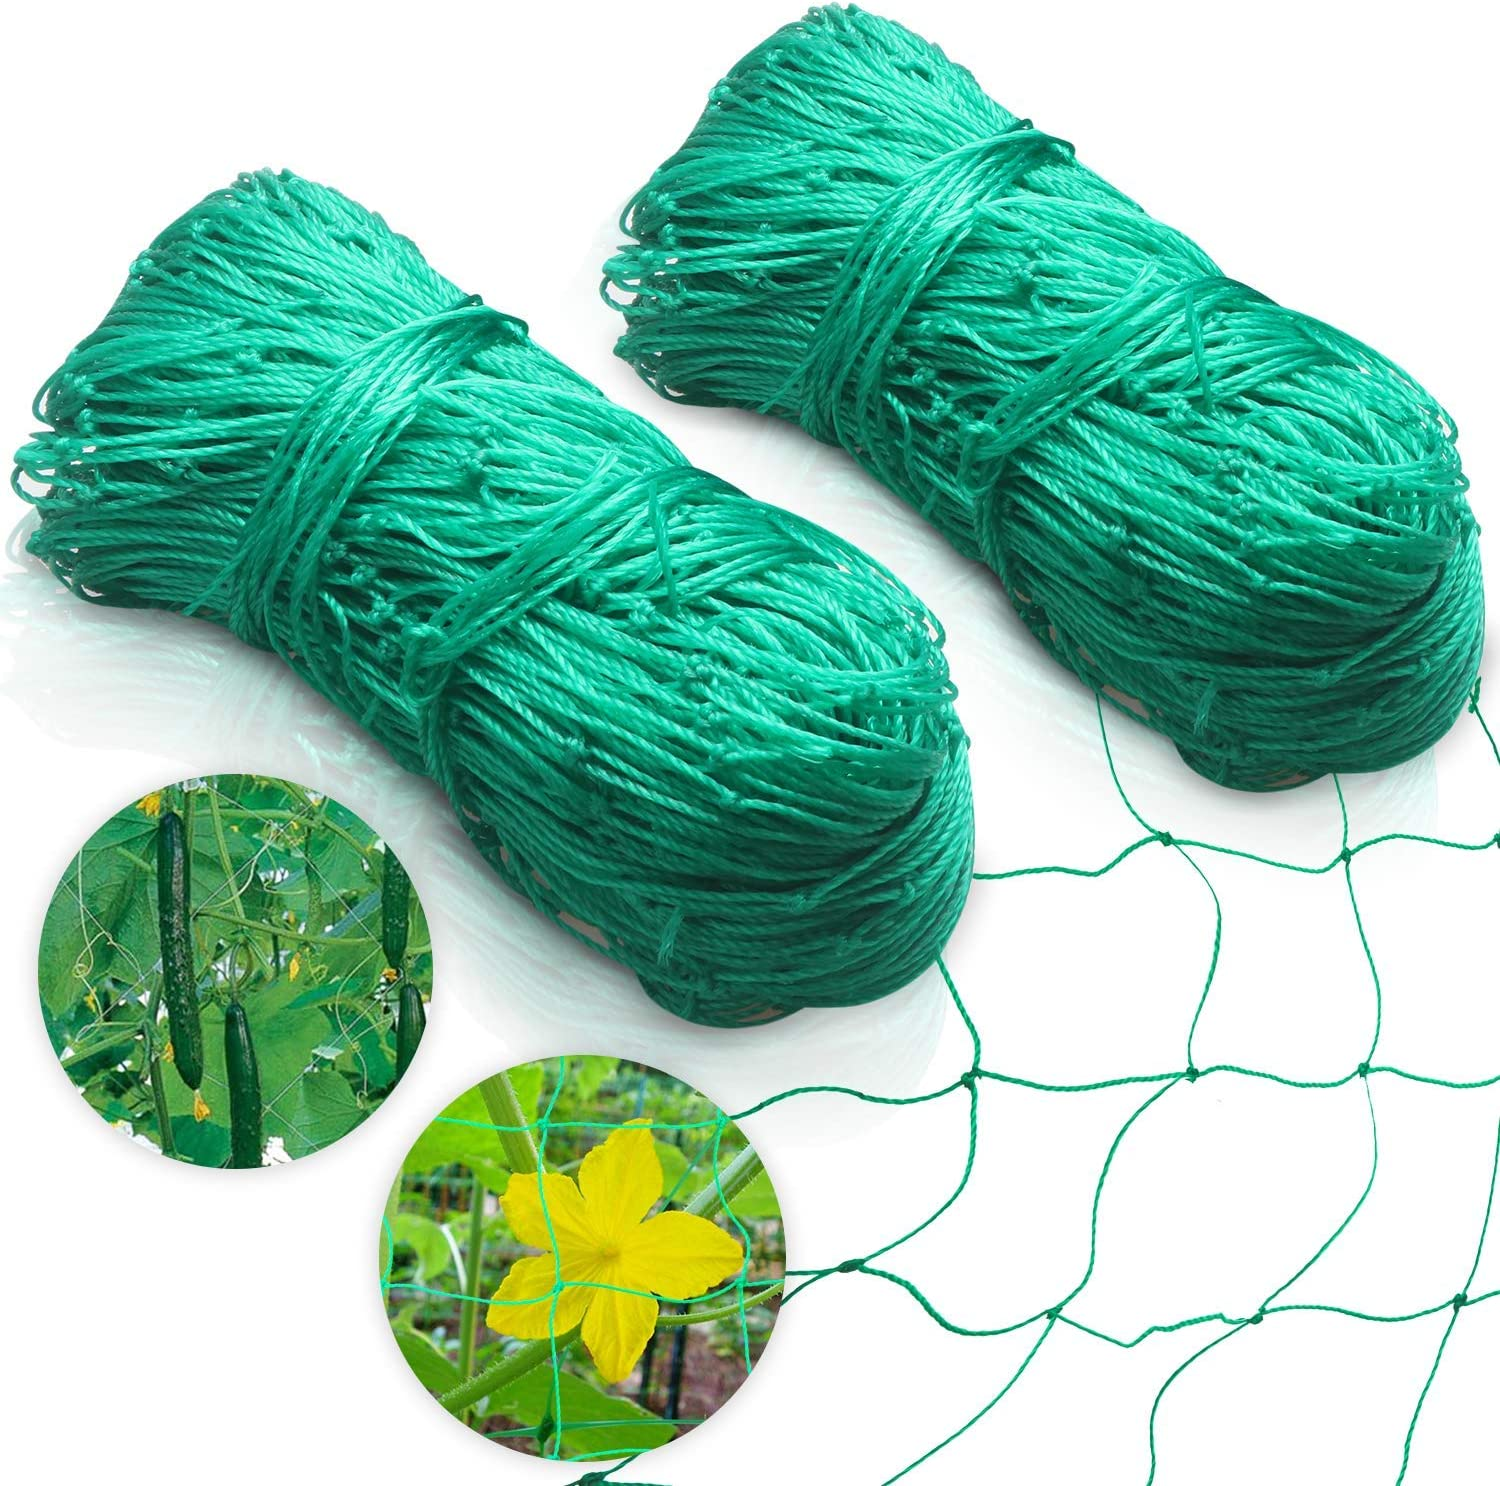 "Ponwec Heavy-Duty Garden Plant Trellis Netting Flexible Elastic Plant Support Vine Net Climbing Garden Trellis Net for Fruits & Vegetables Tomato Plants and More,2 Pack (6' x 16.5'Ft,4"" Mesh Size"